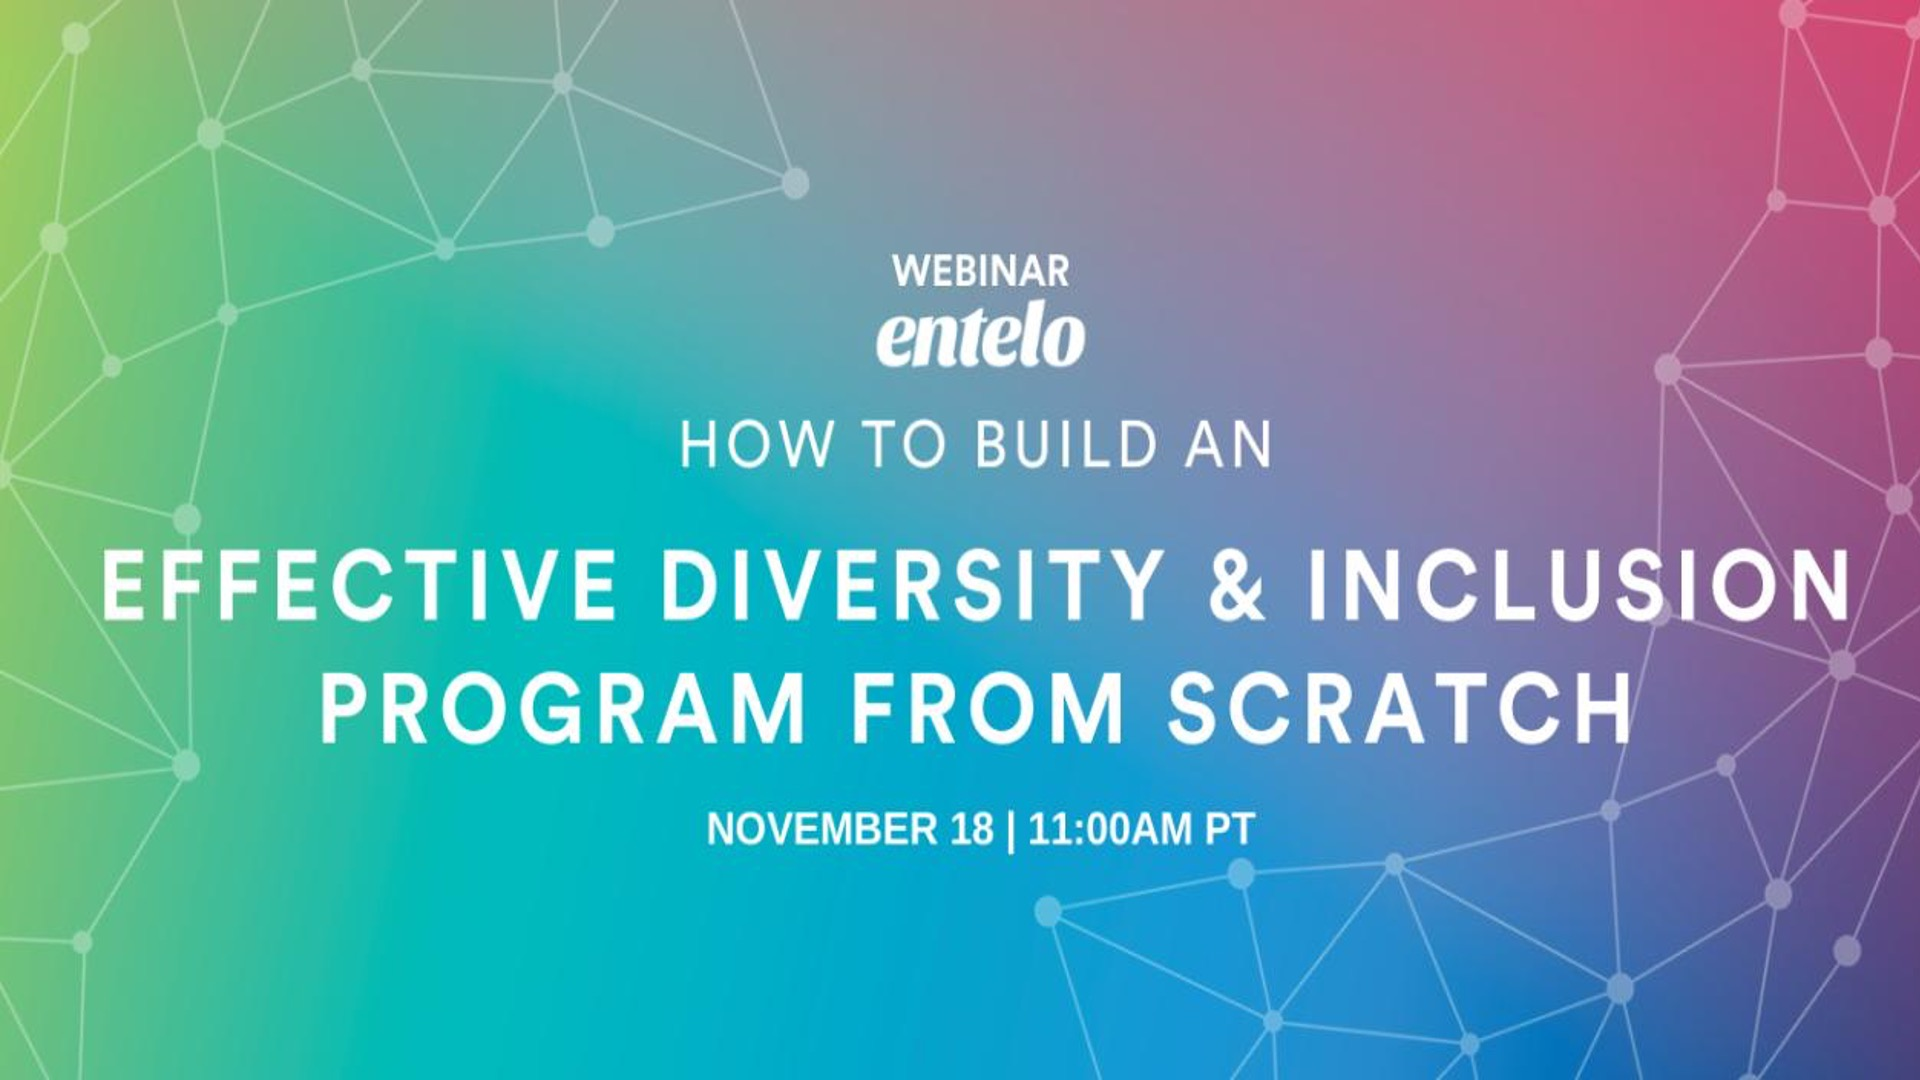 How to Build an Effective Diversity & Inclusion Program from Scratch